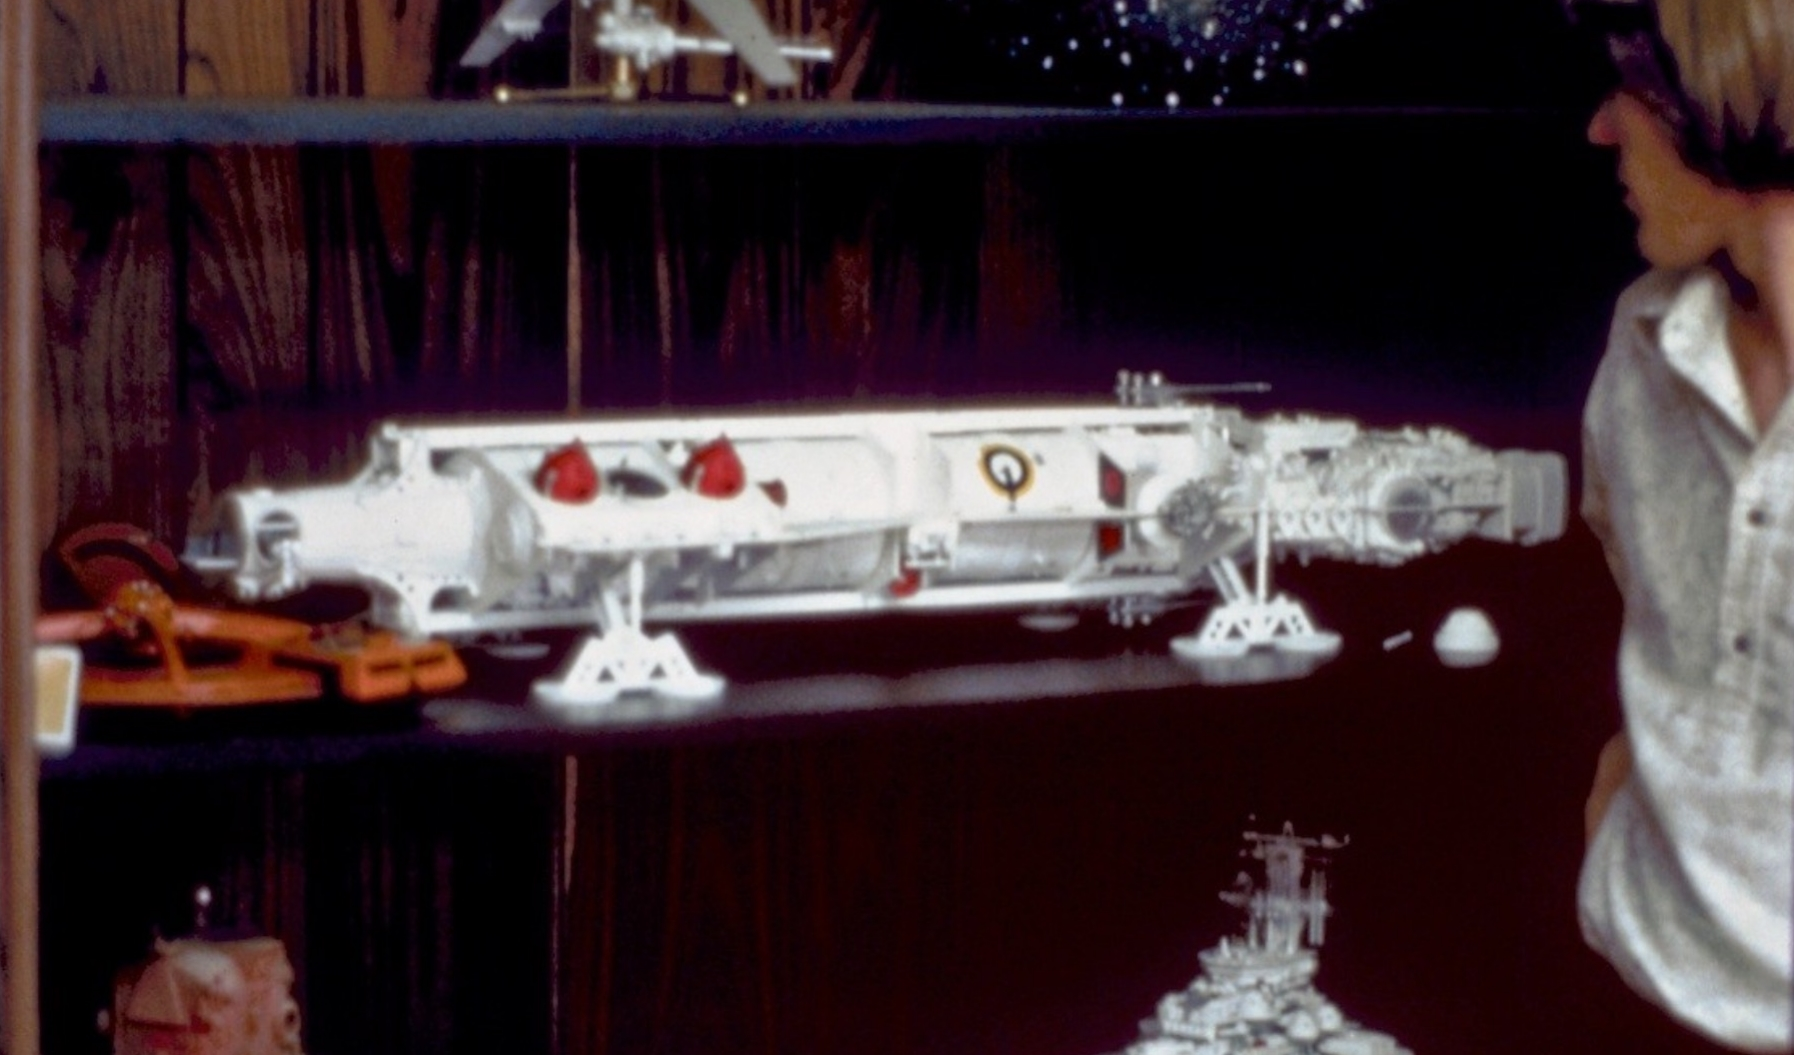 Colin Cantwell's Pirate Ship model, sans cockpit, with Joe Johnston lingering on the sidelines.